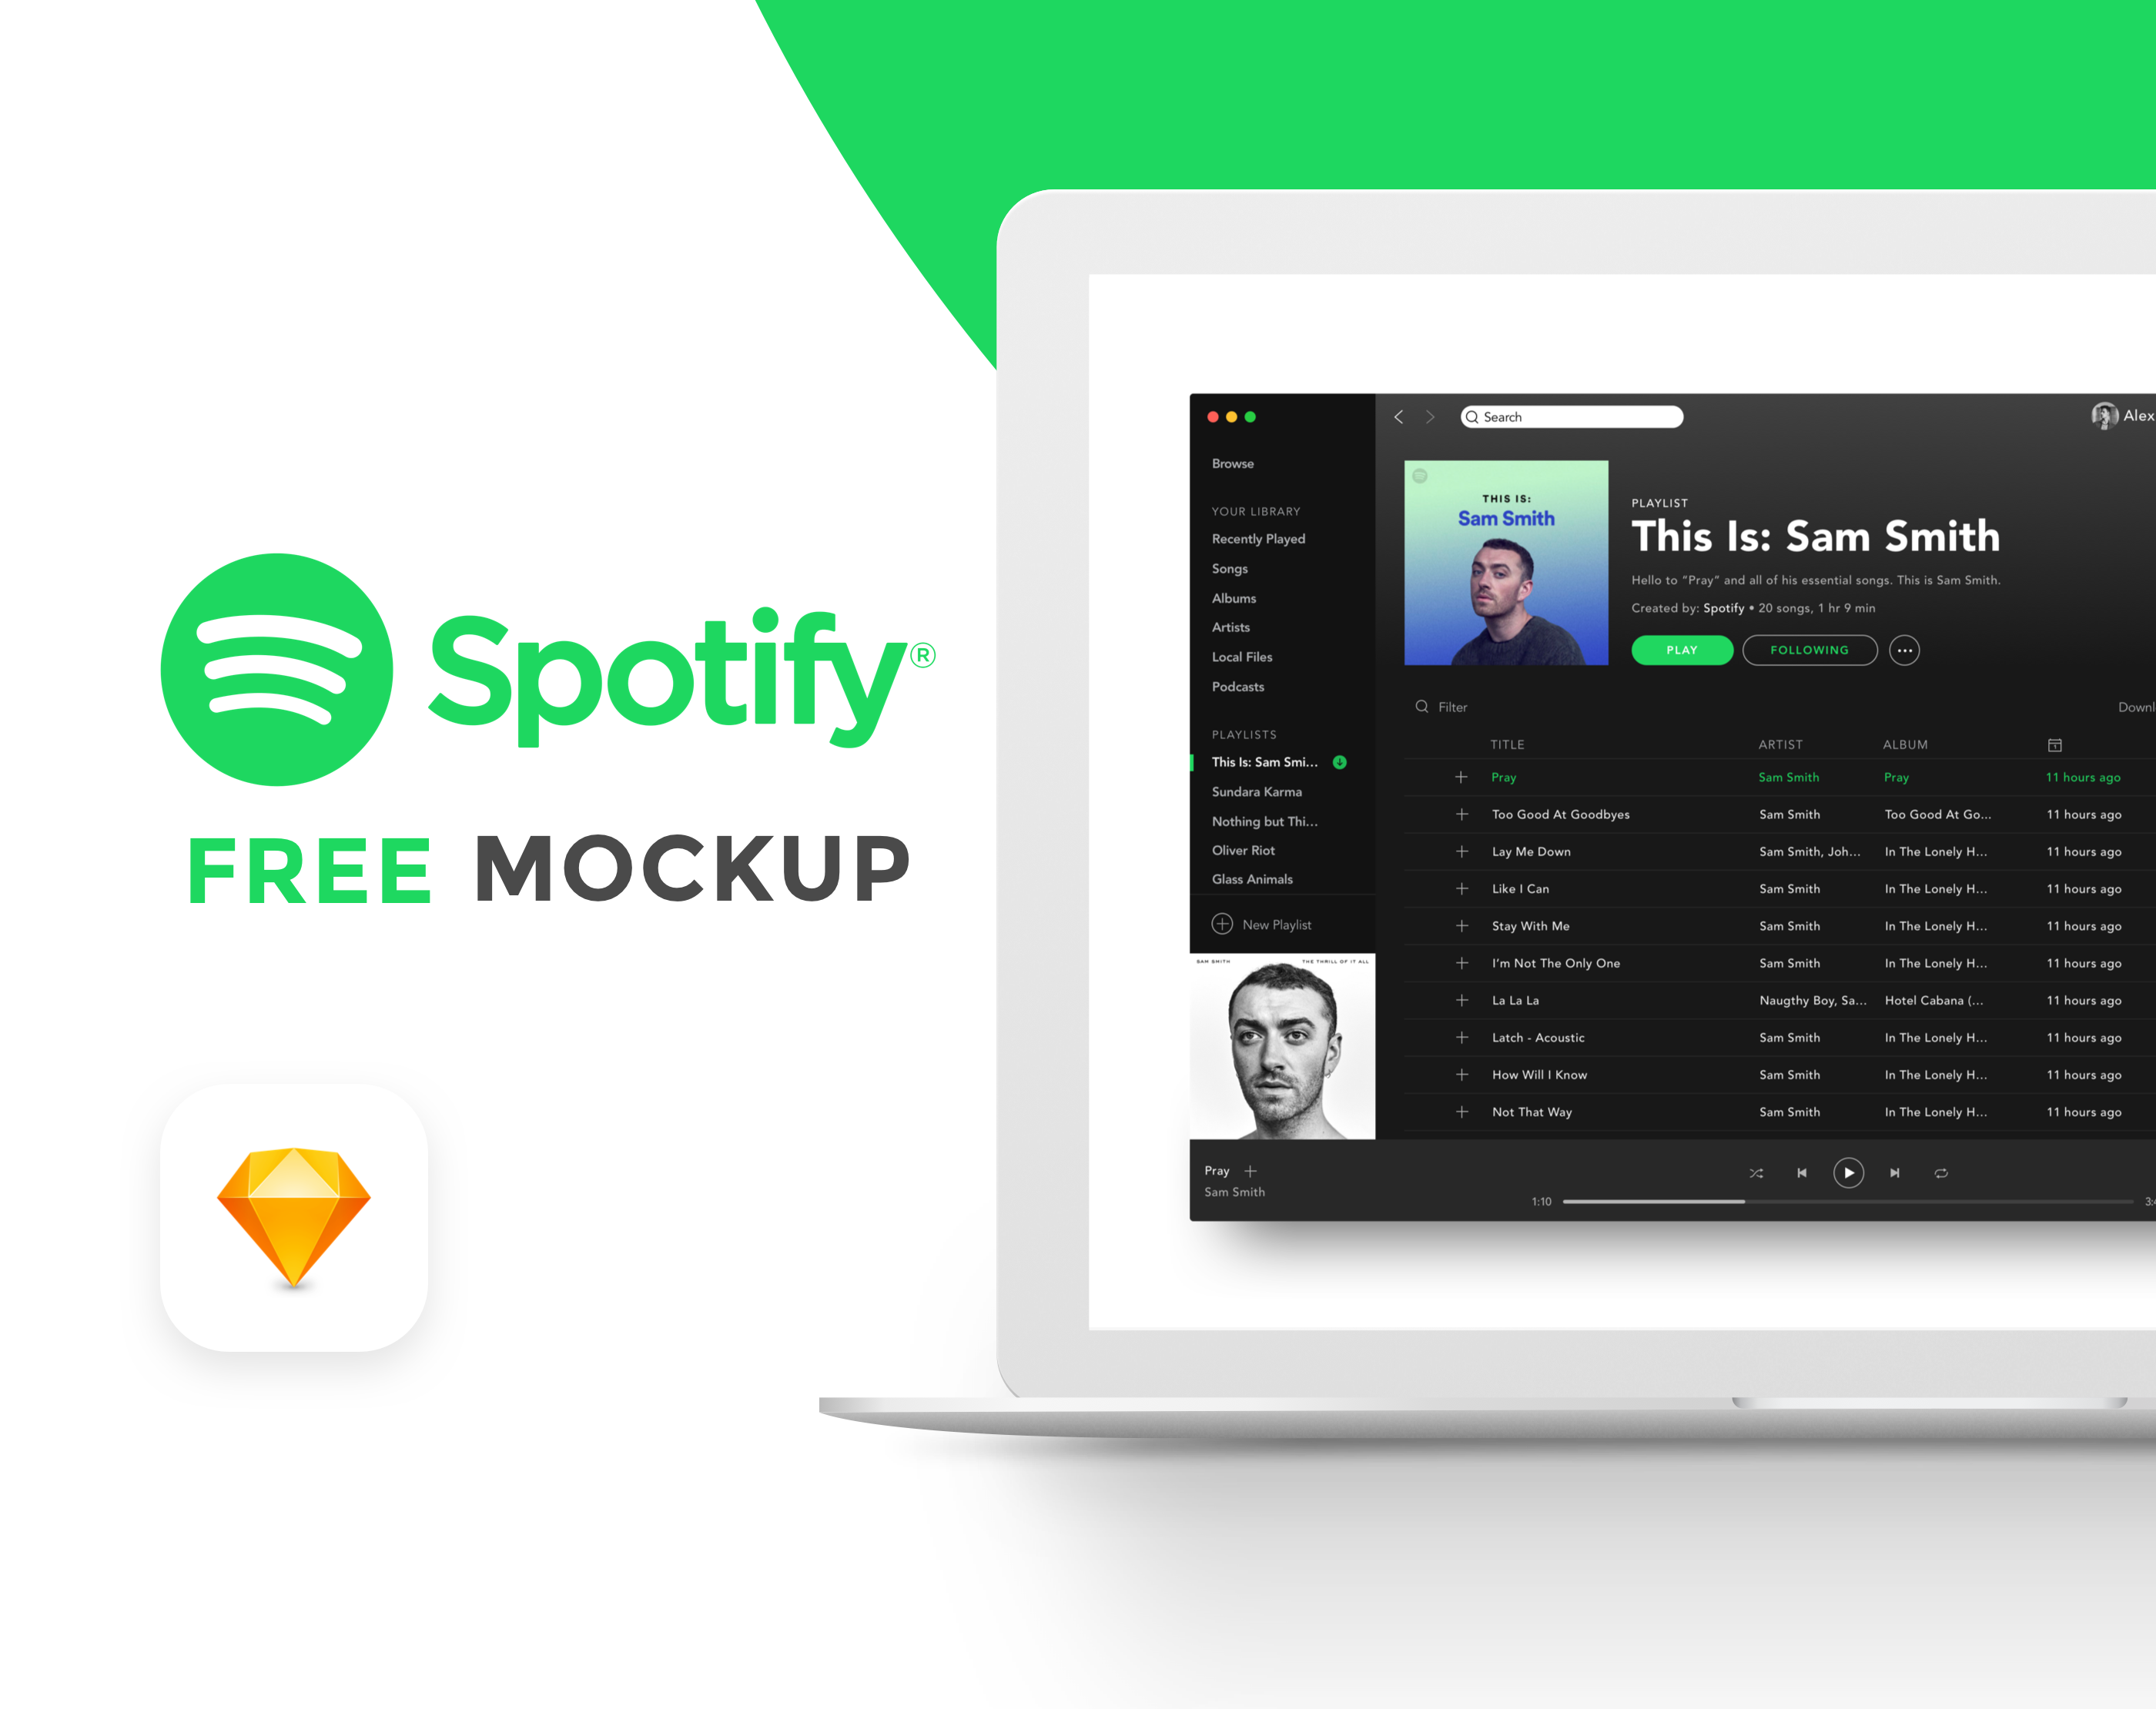 Check Out This Behance Project Free Spotify Mockup Https Www Behance Net Gallery 57704195 Free Spotify Mockup Business Icon Free Mockup Mockup